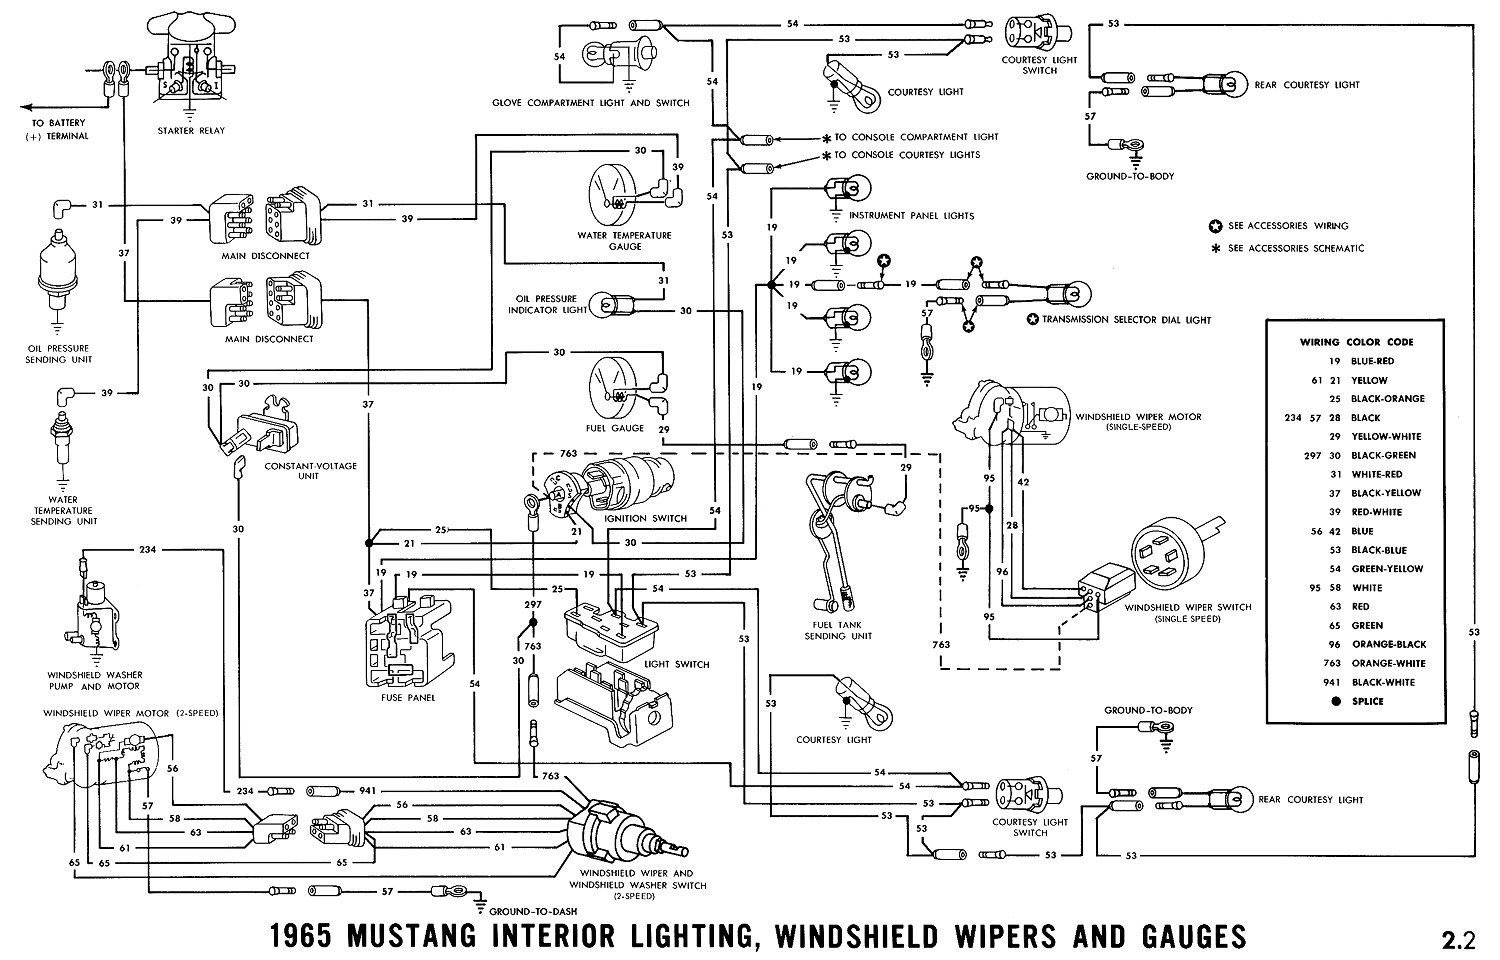 1965g 1965 mustang wiring diagrams average joe restoration ford mustang wiring diagram at arjmand.co